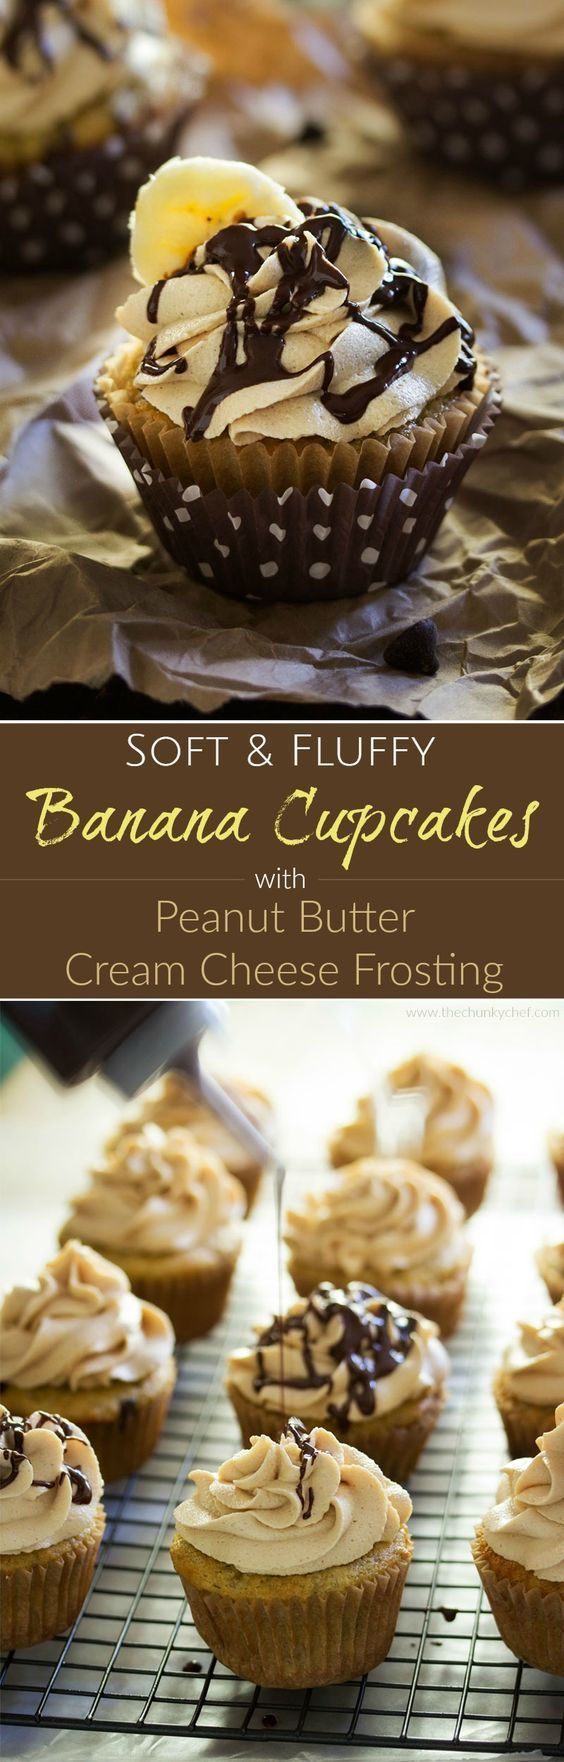 Banana Cupcakes | Unbelievably soft banana cupcakes are frosted with a creamy peanut butter cream cheese frosting that's kissed with honey, and drizzled with chocolate!